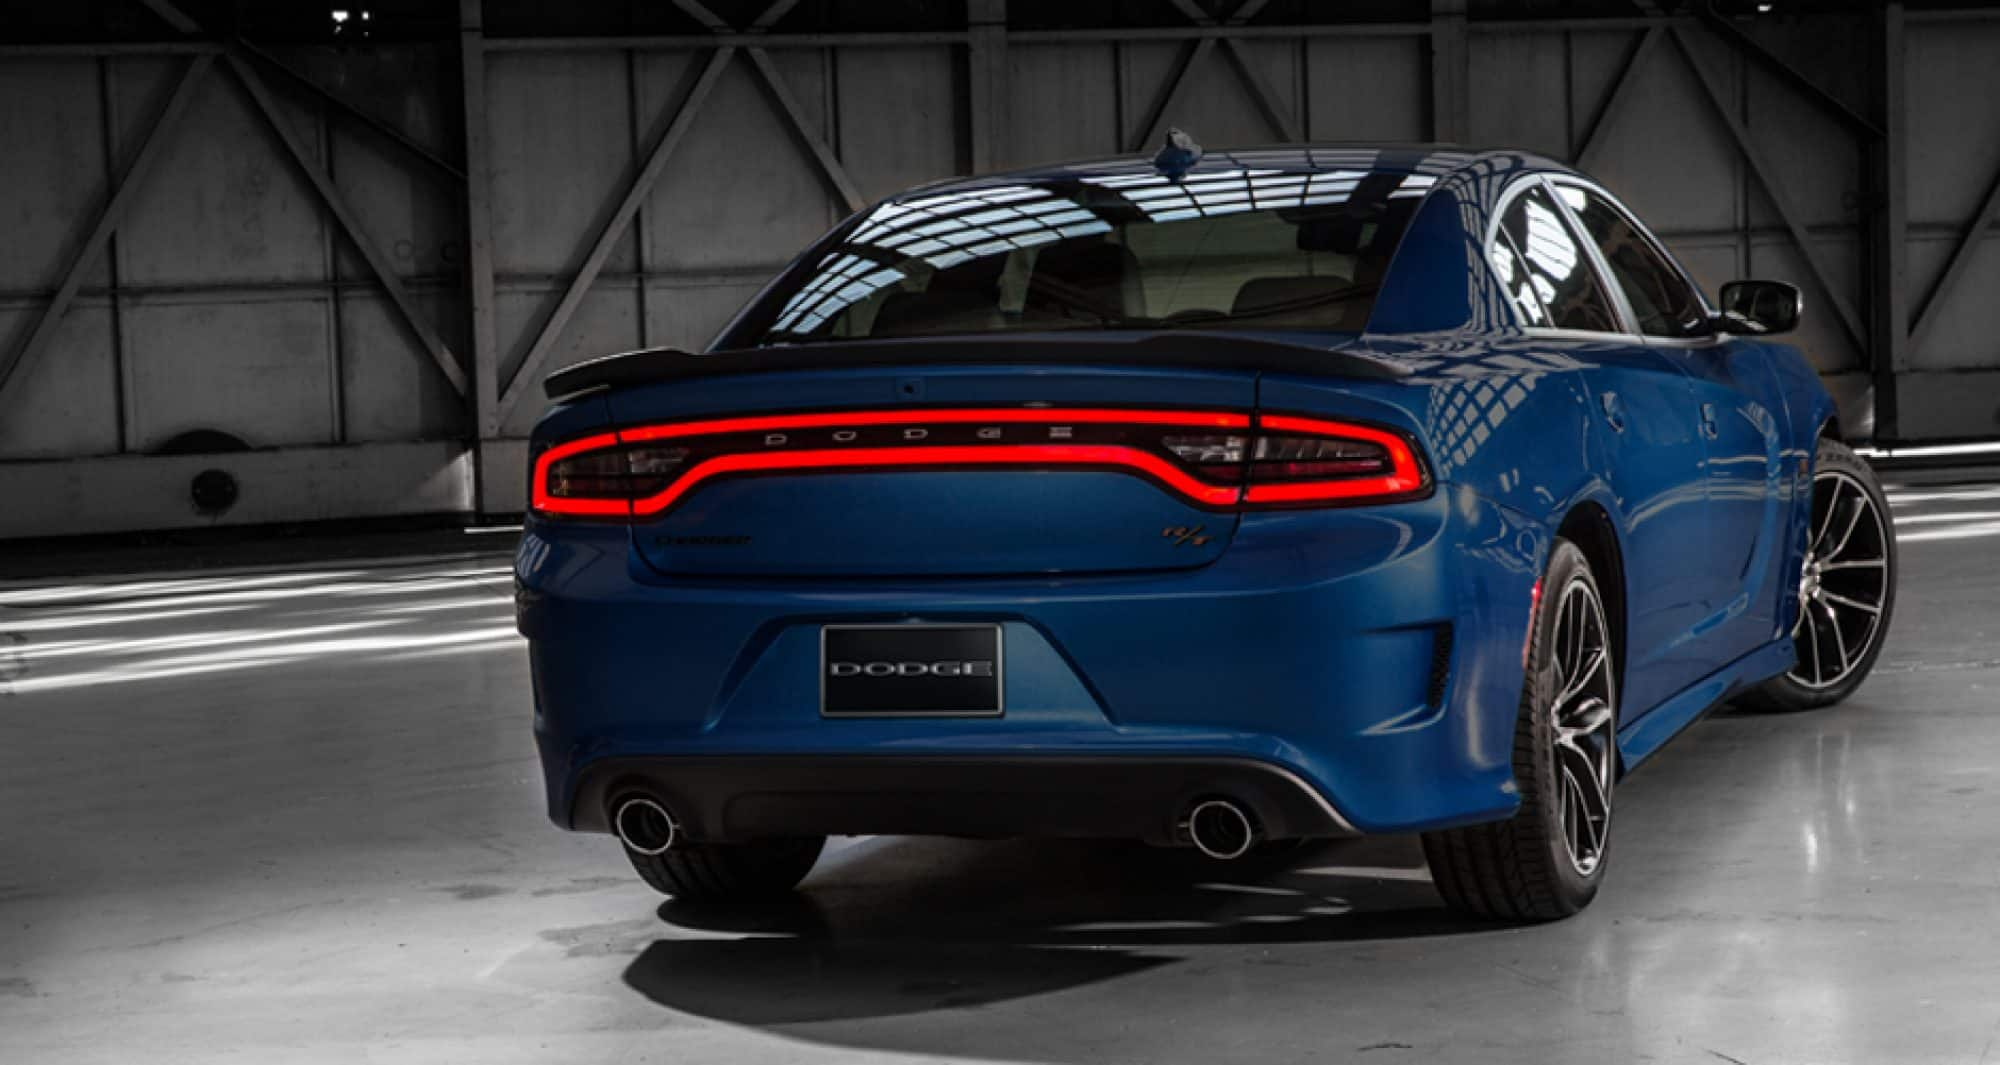 Back view of blue 2018 Dodge Charger